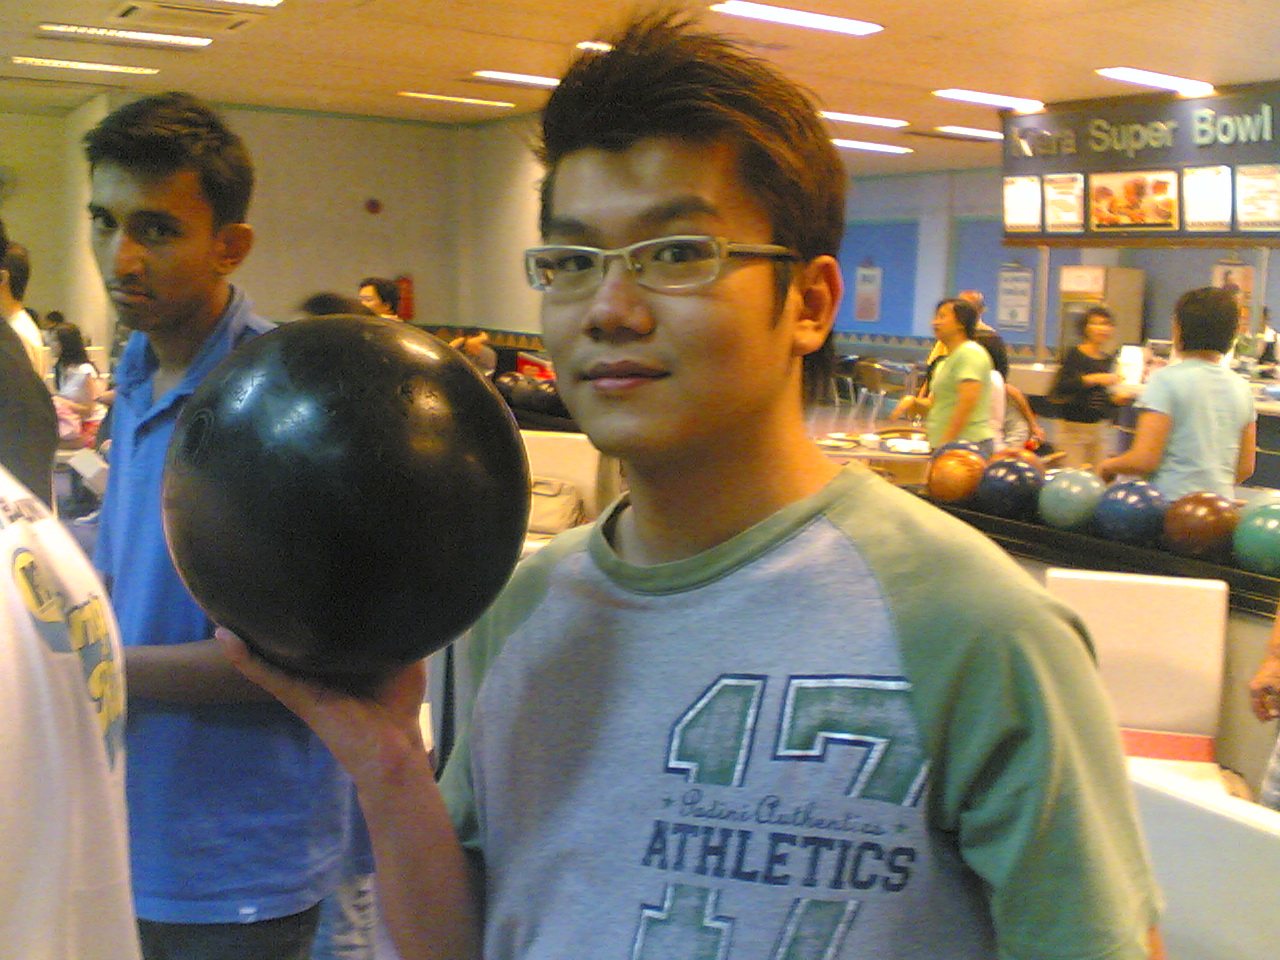 Jon and his 'ball'